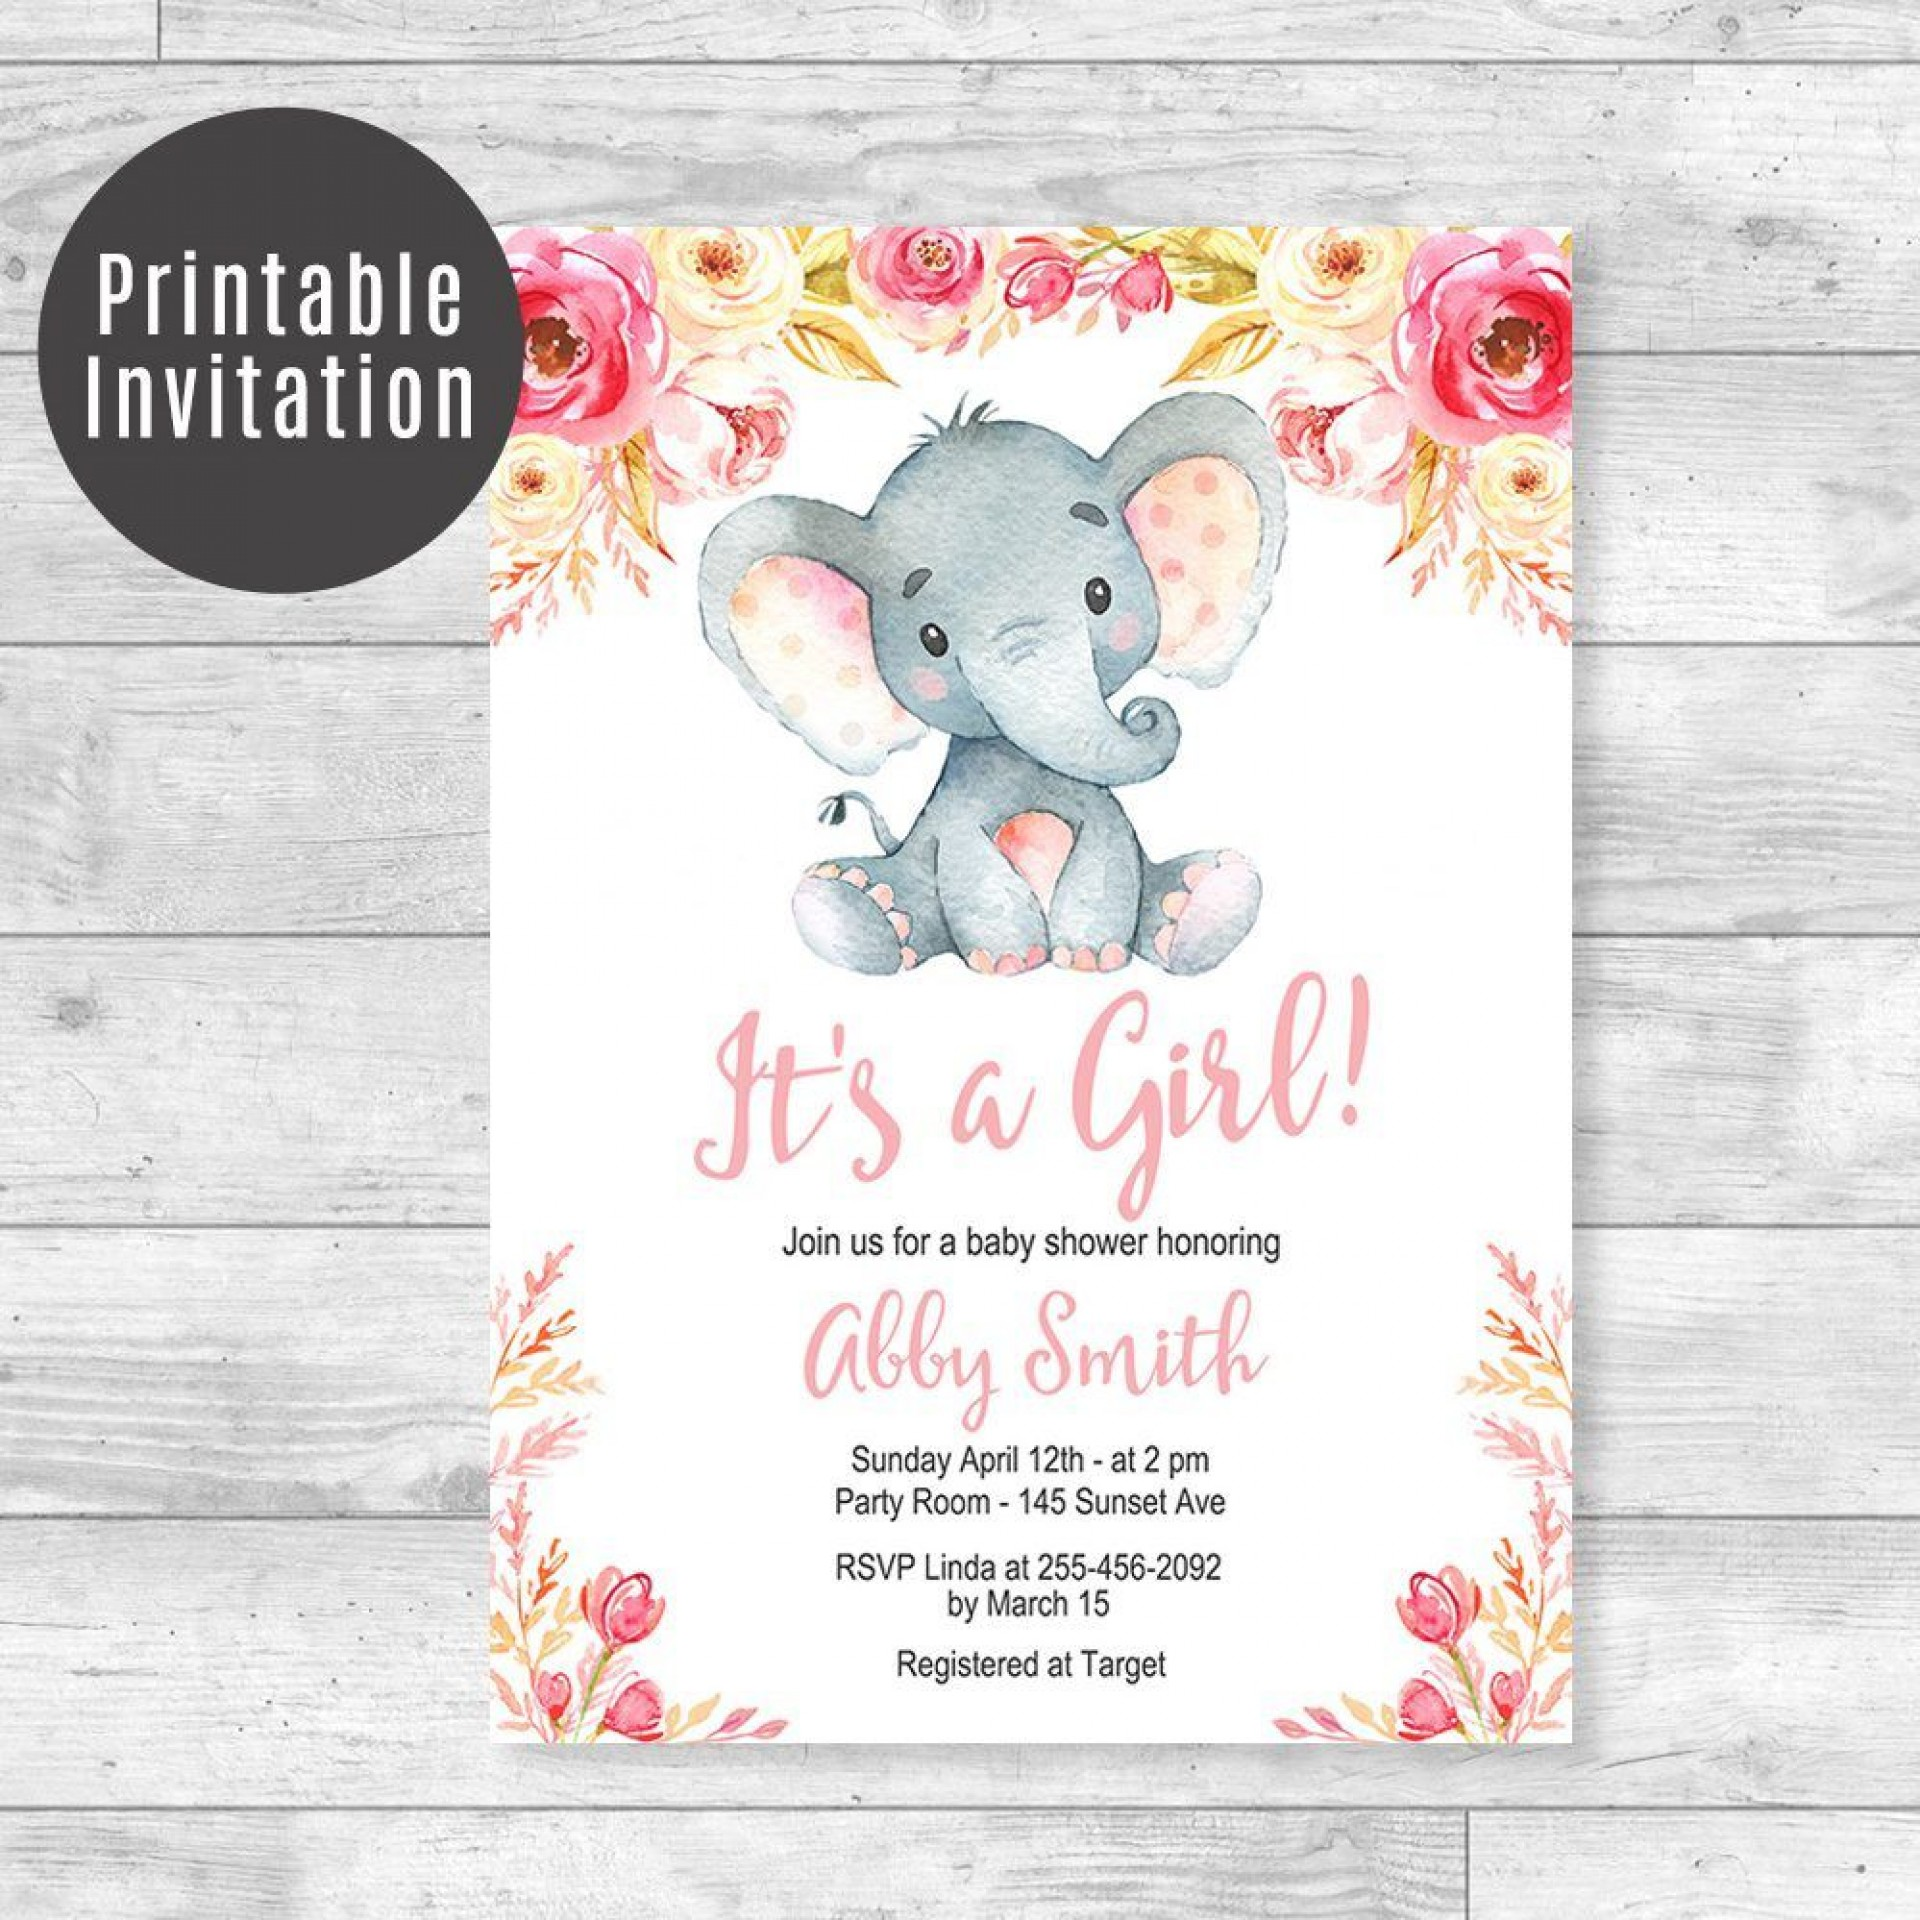 005 Archaicawful Baby Shower Invitation Girl Printable High Resolution 1920